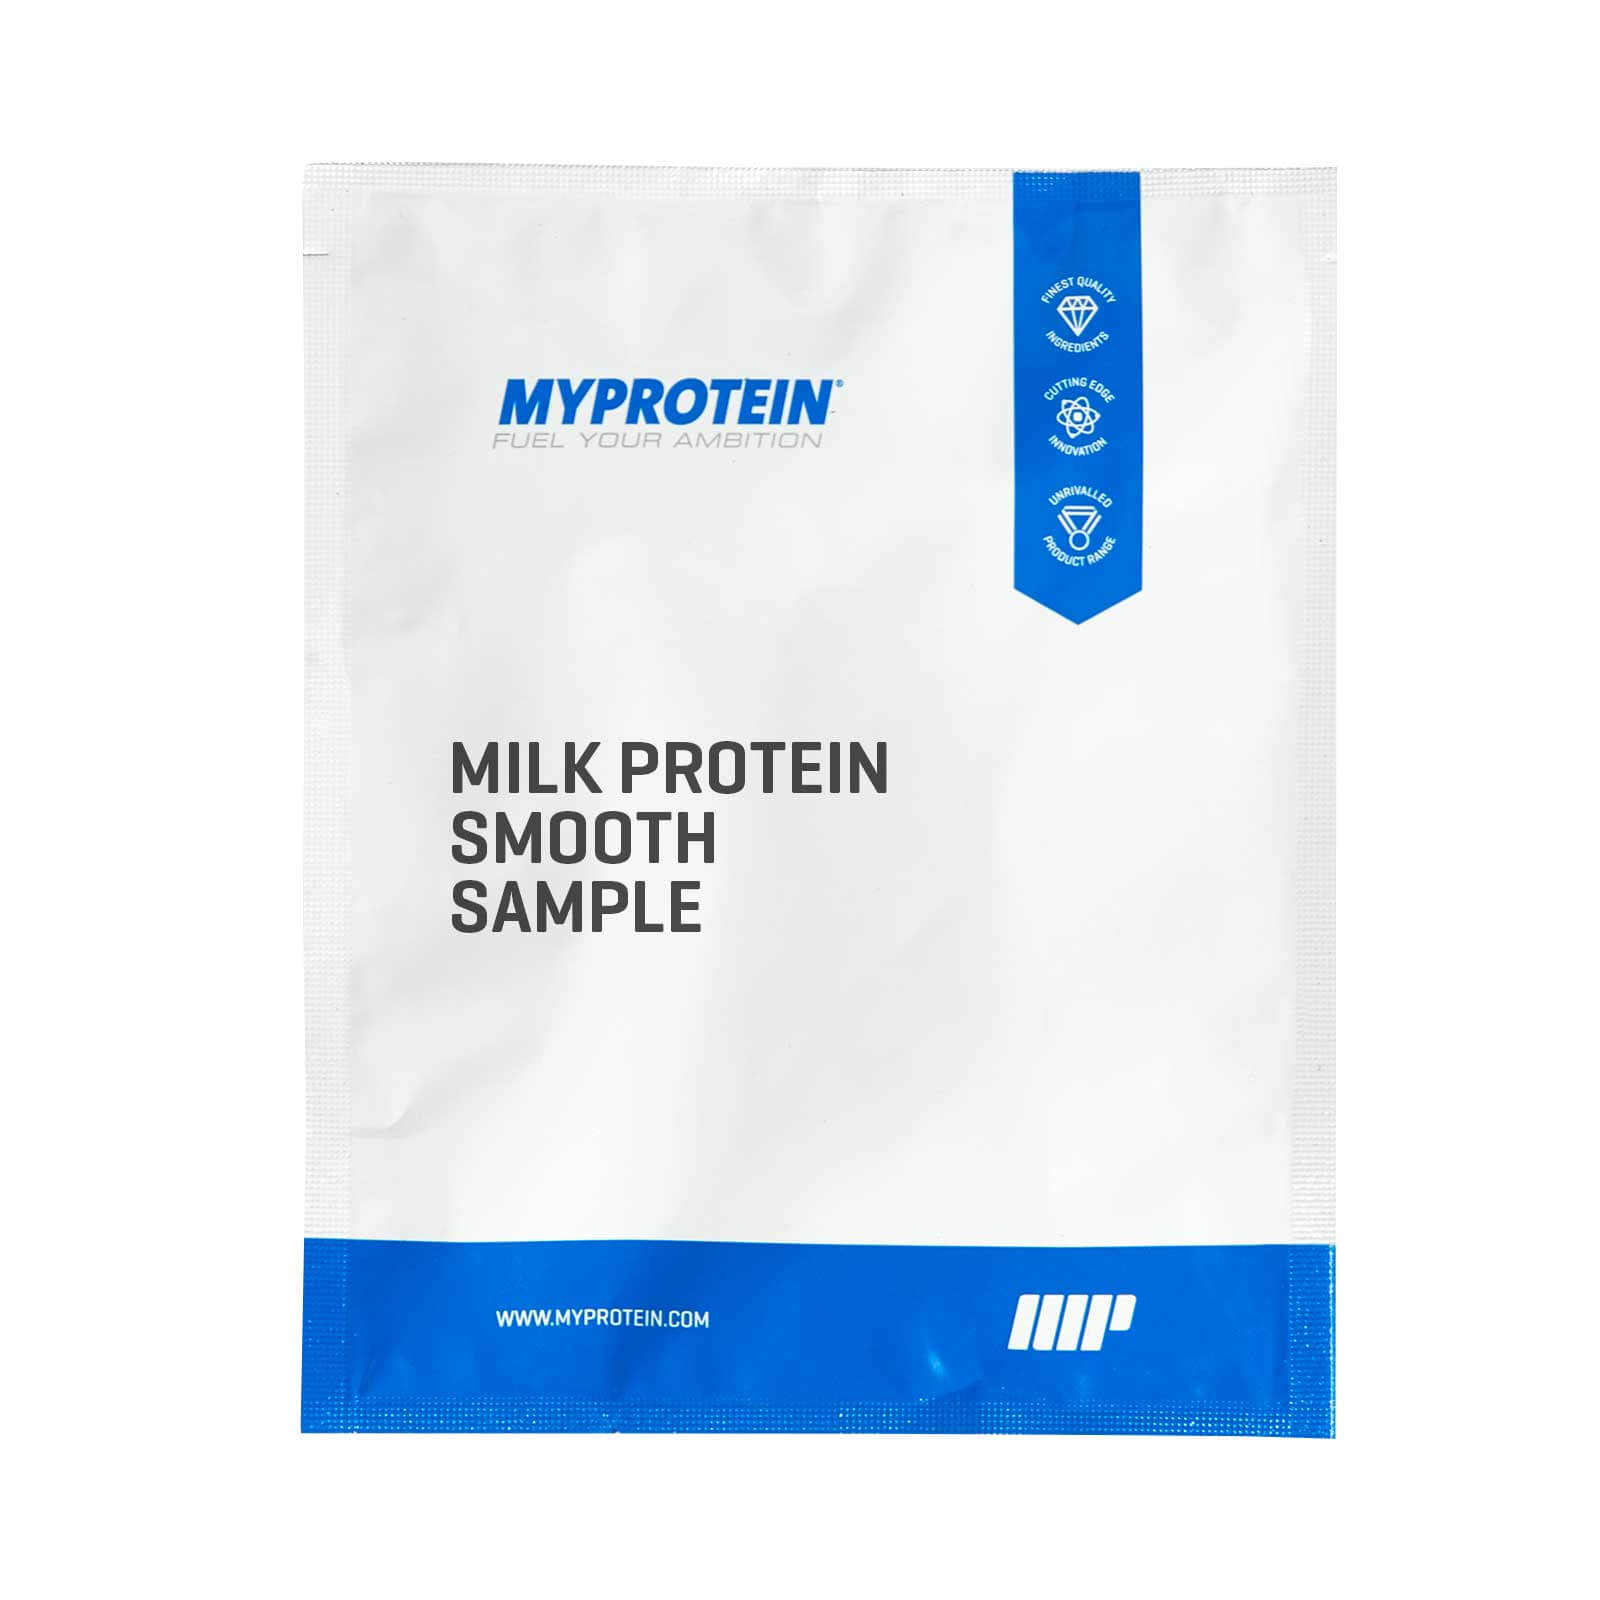 Milk Protein Smooth (Sample) - Unflavoured - 30g